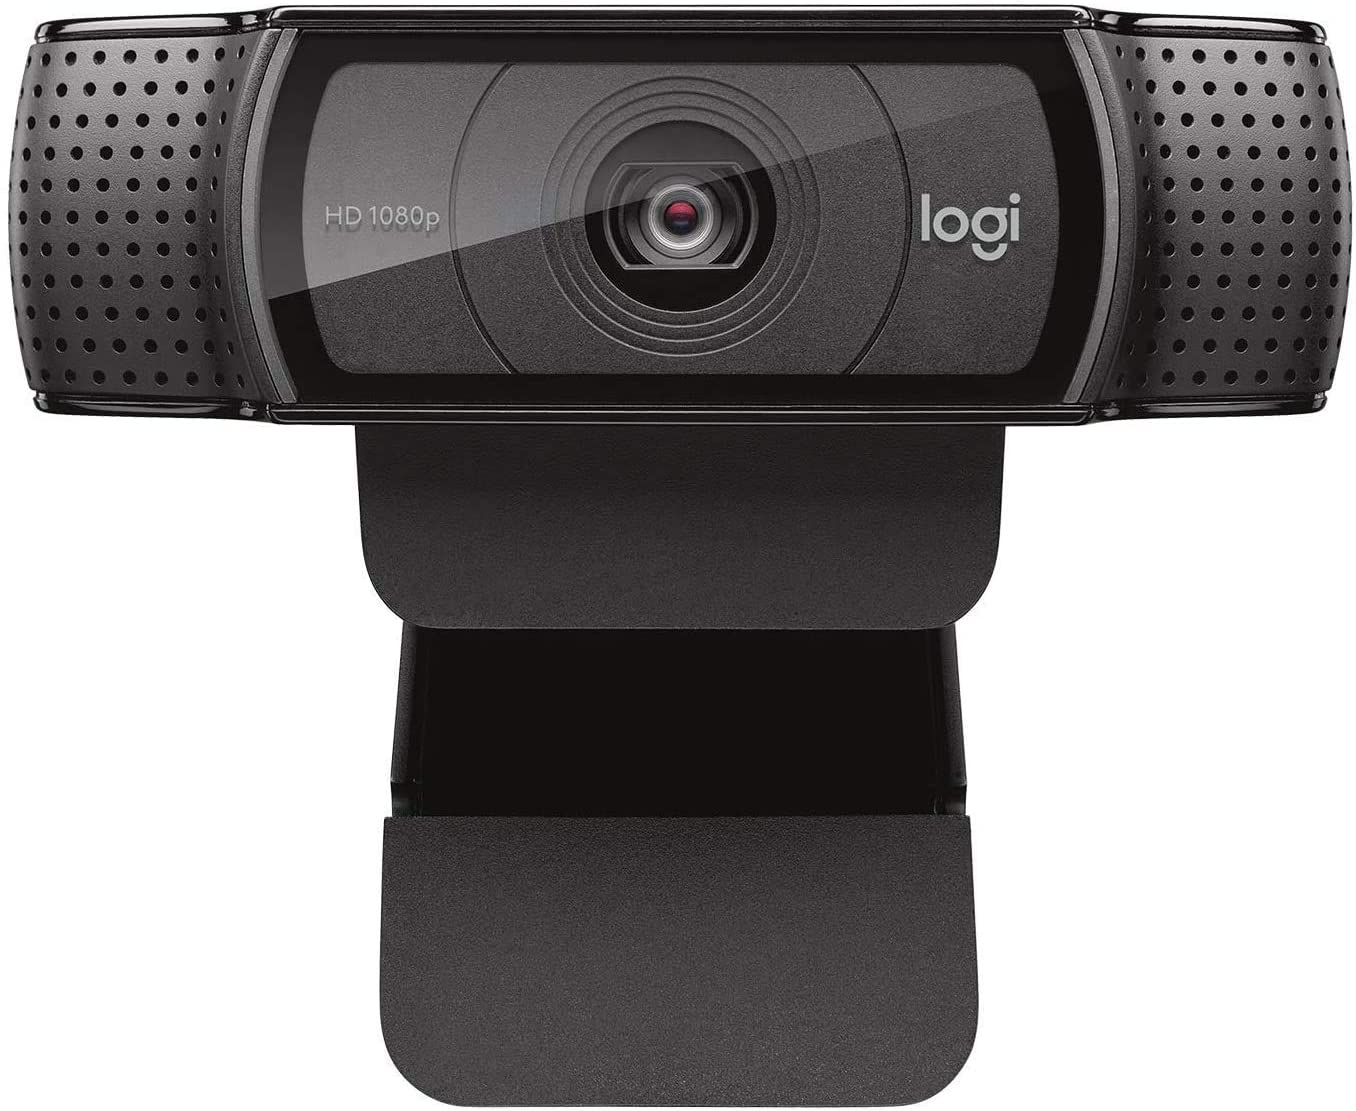 Logitech C920e / C920 HD Webcam, Full HD 1080p Video Calling and Recording, Dual Stereo Audio, Stream Gaming - Black